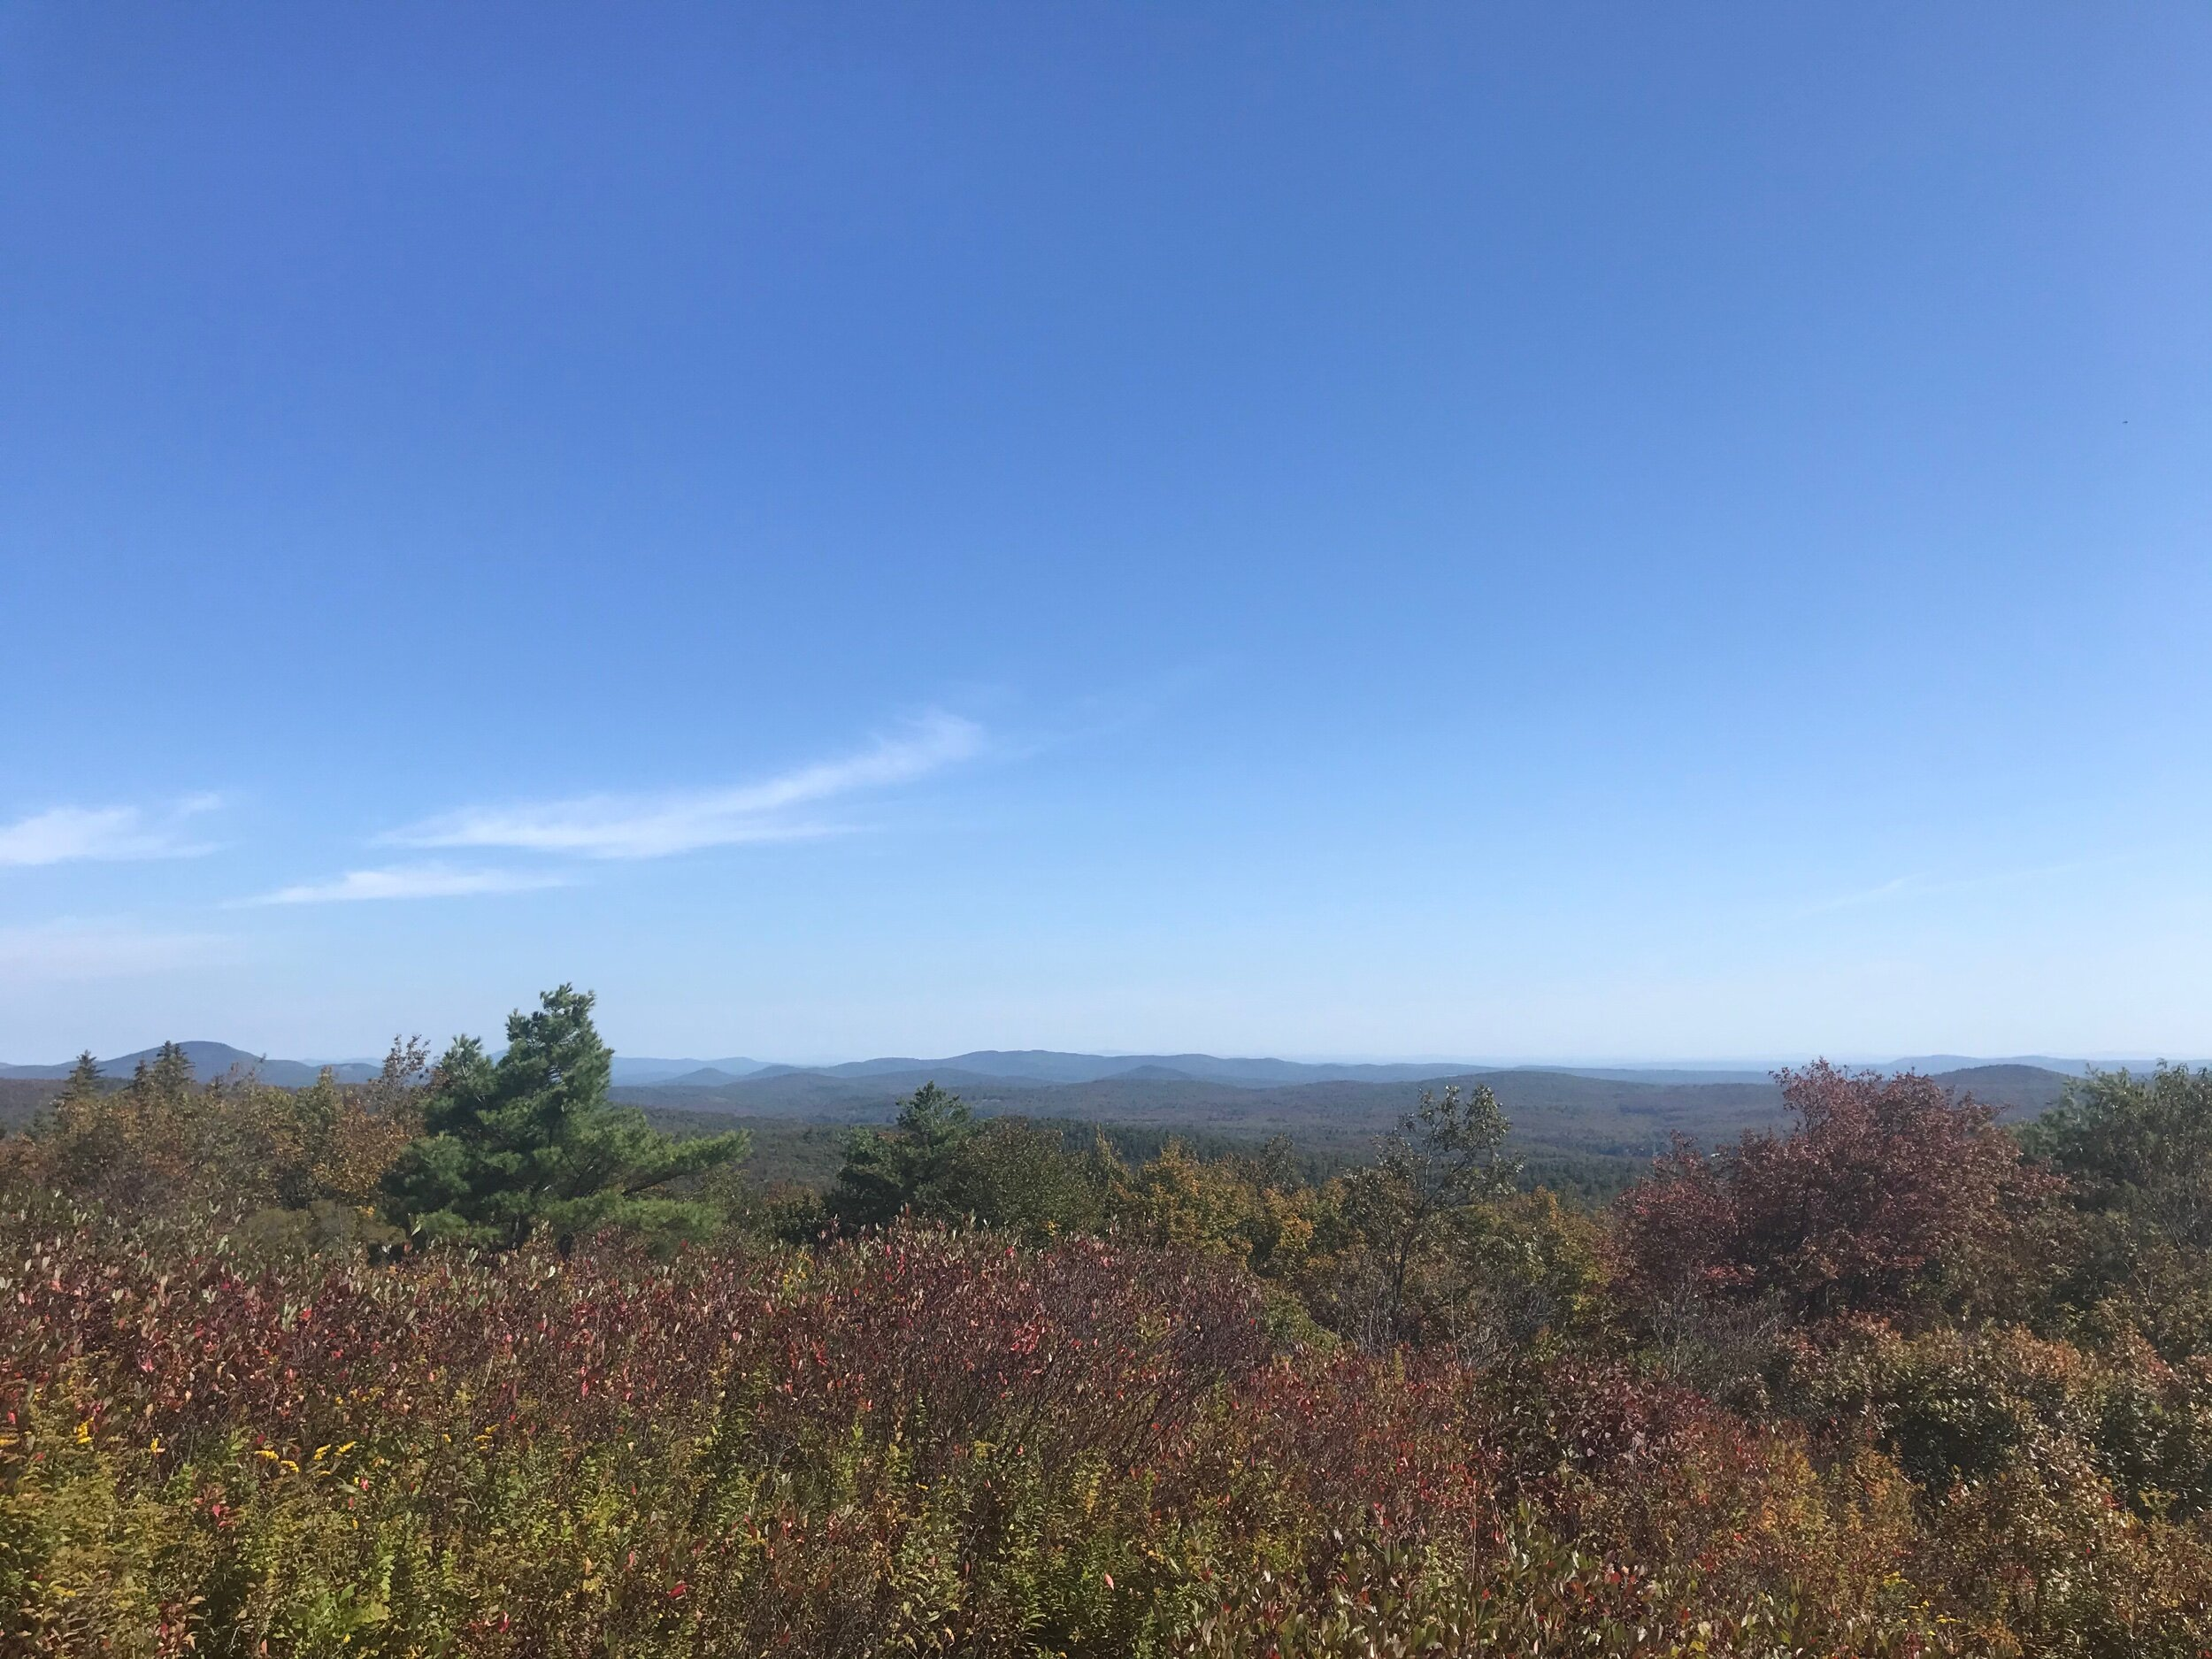 View from Pitcher Mountain in Stoddard